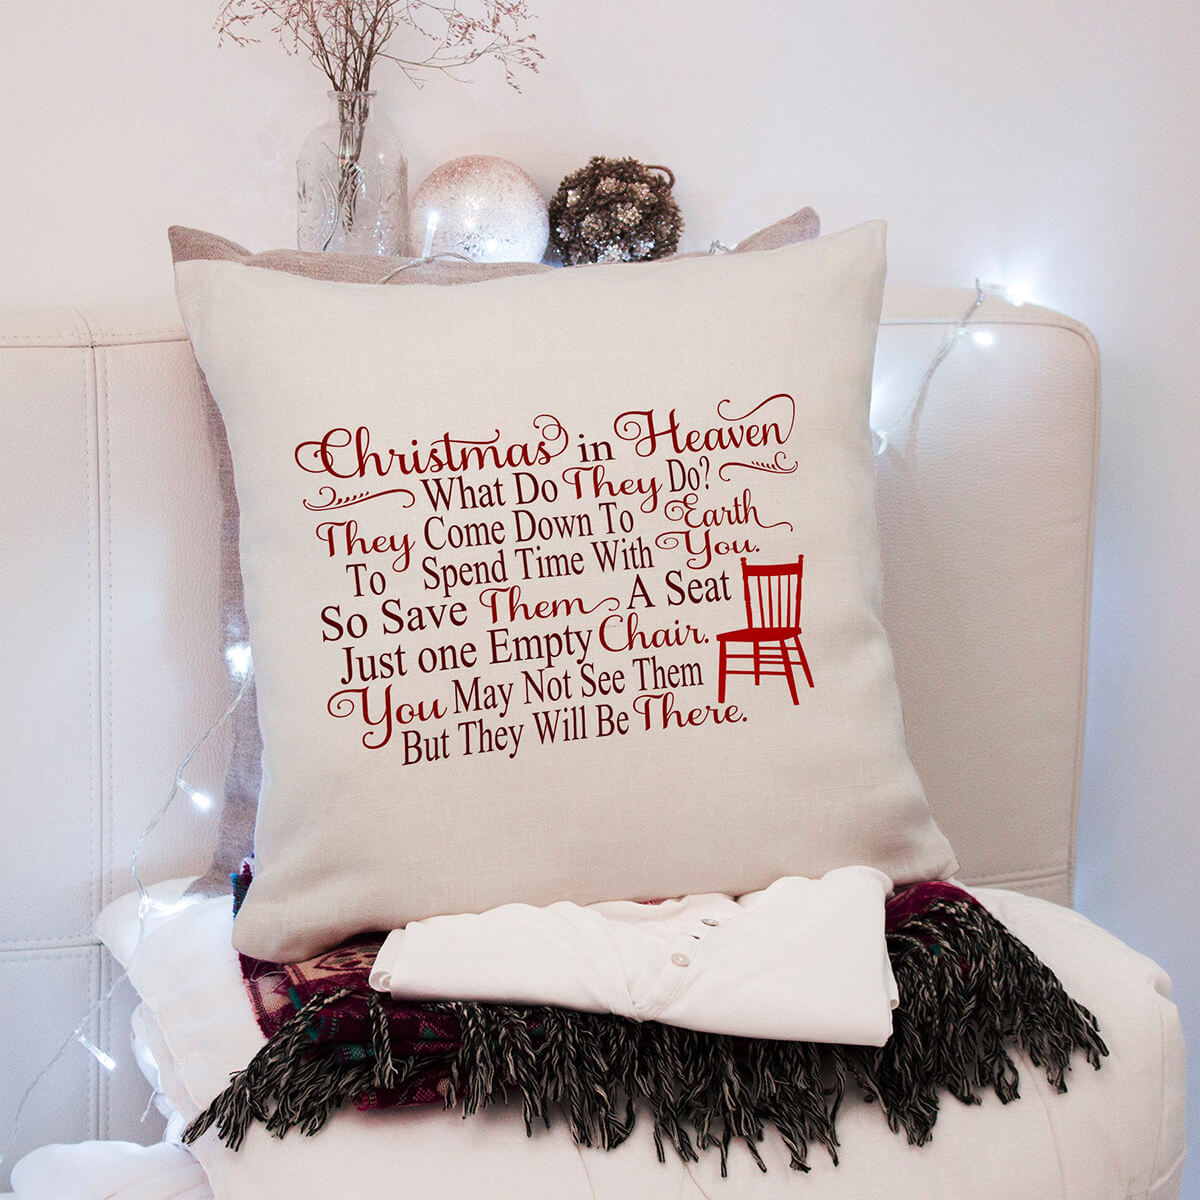 Fine 29 Best Christmas Pillows To Find The Perfect Couch Inzonedesignstudio Interior Chair Design Inzonedesignstudiocom